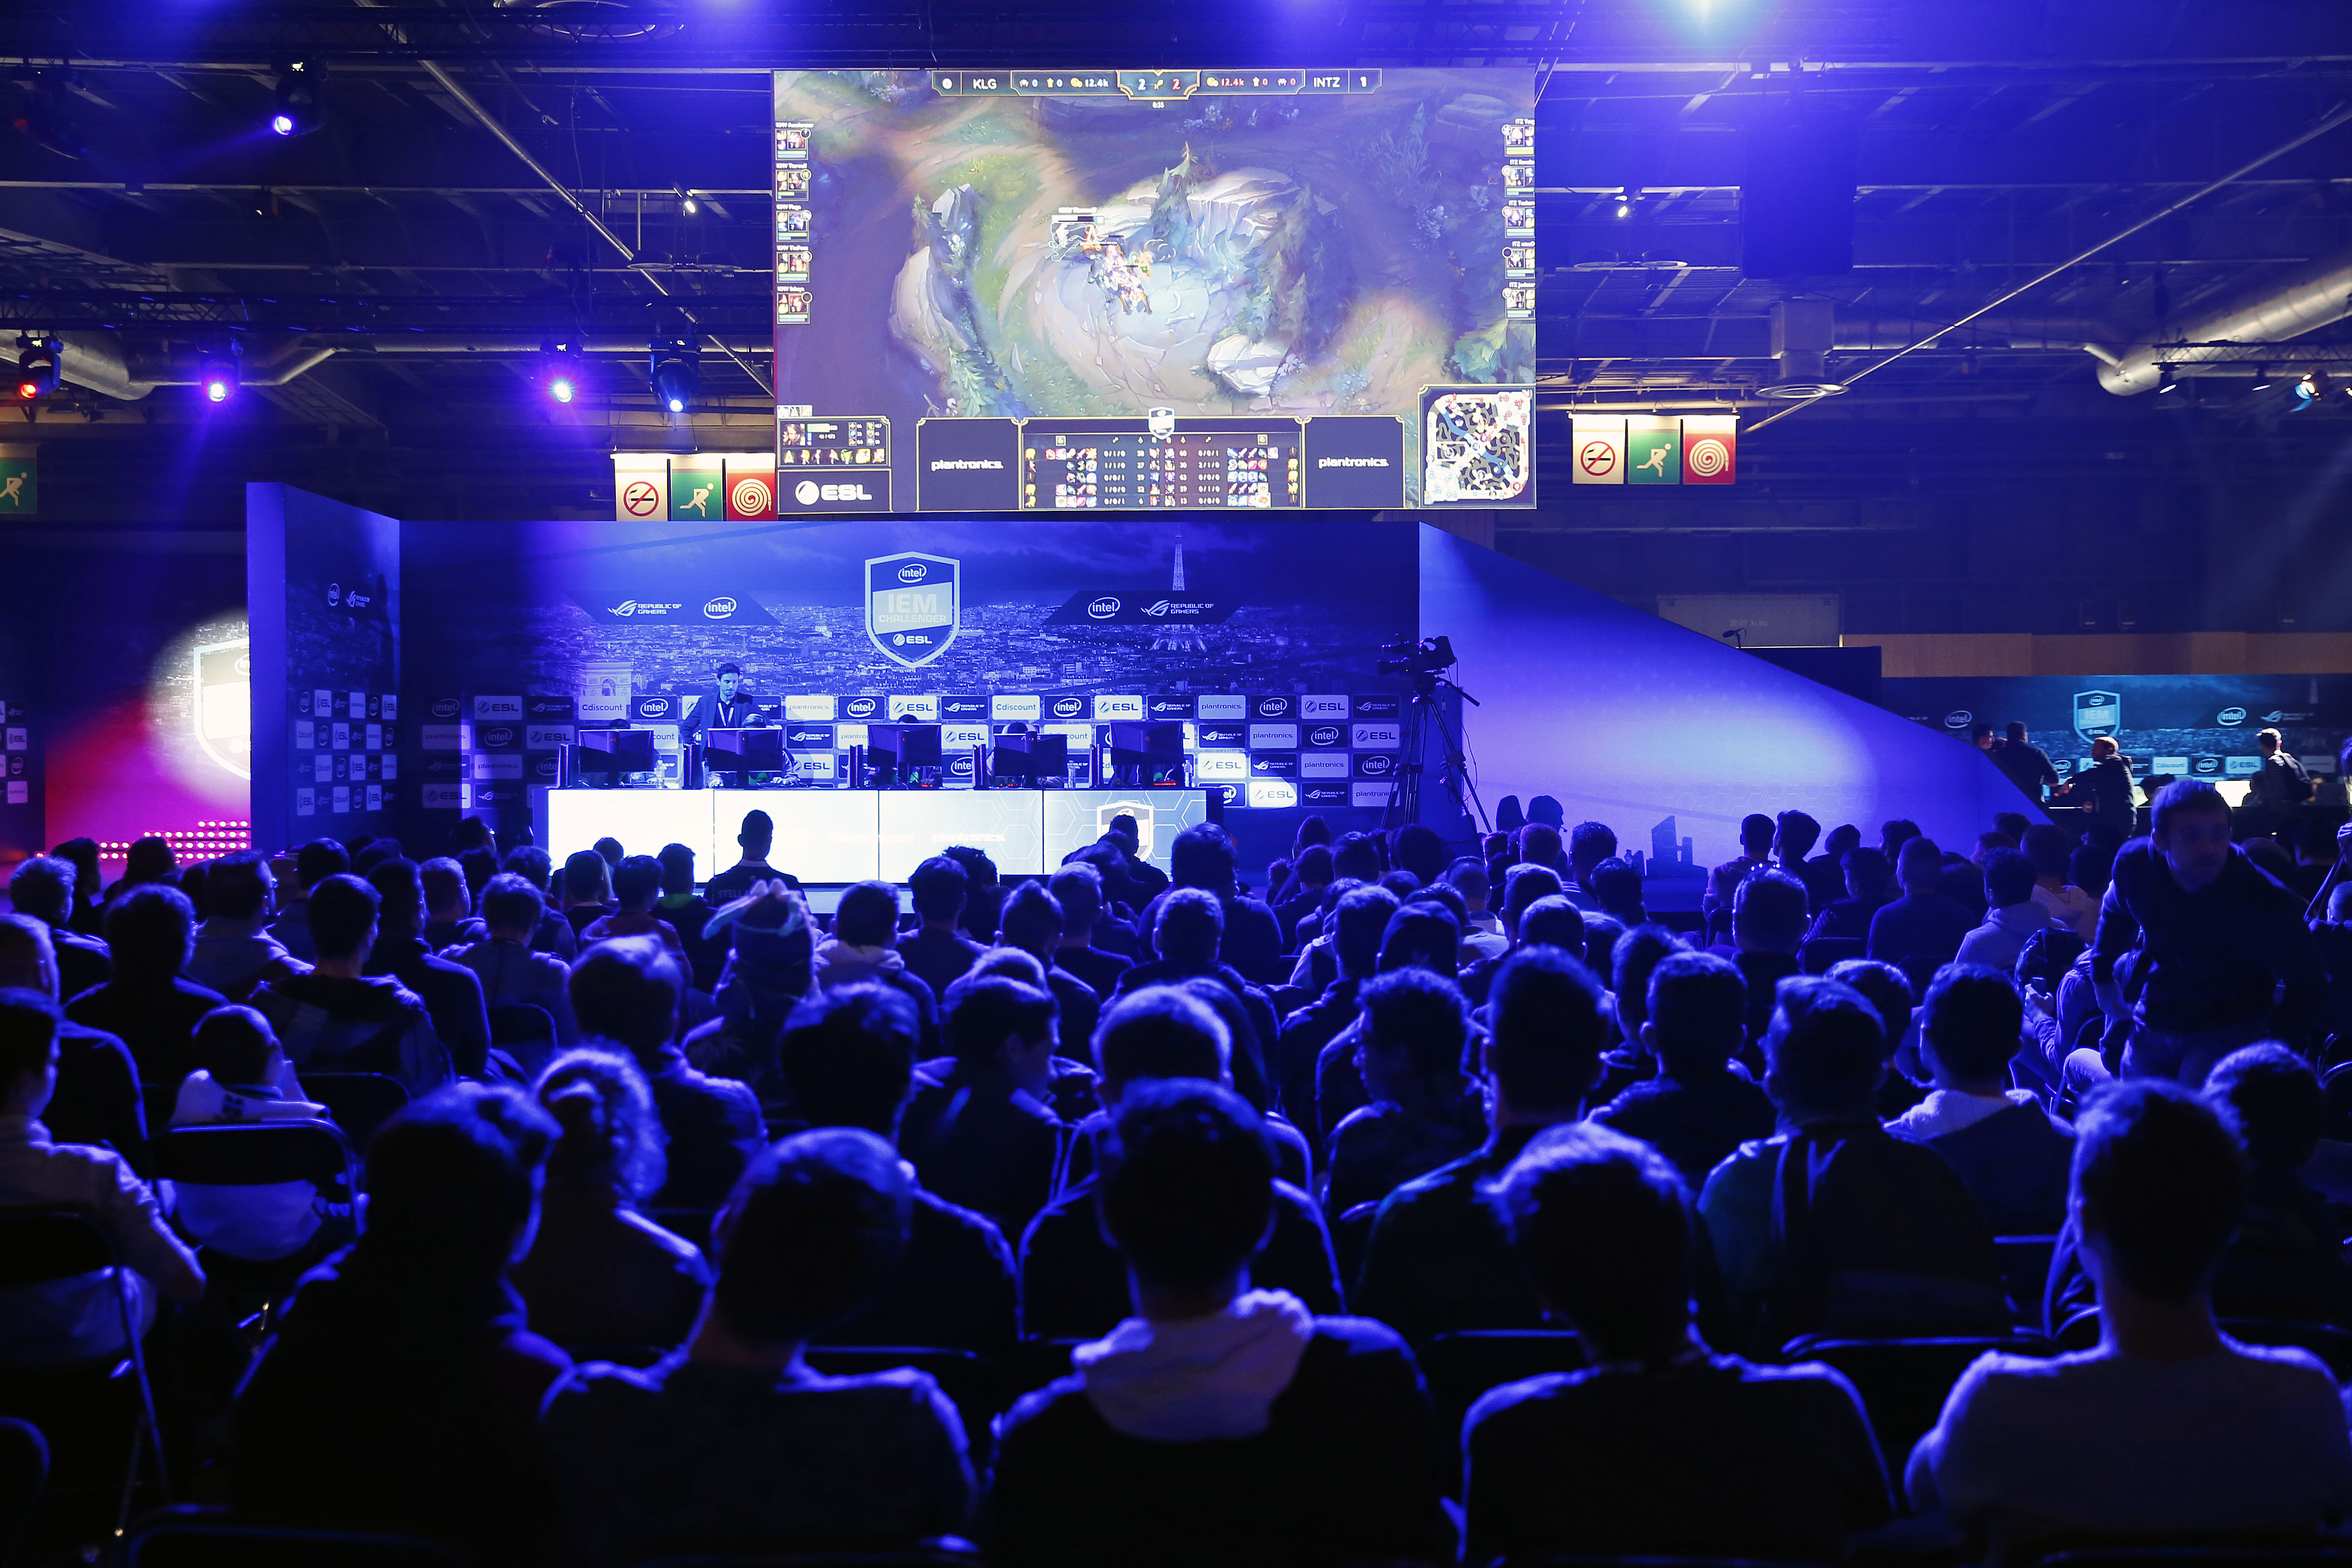 The importance of streaming to e-sports | TechCrunch